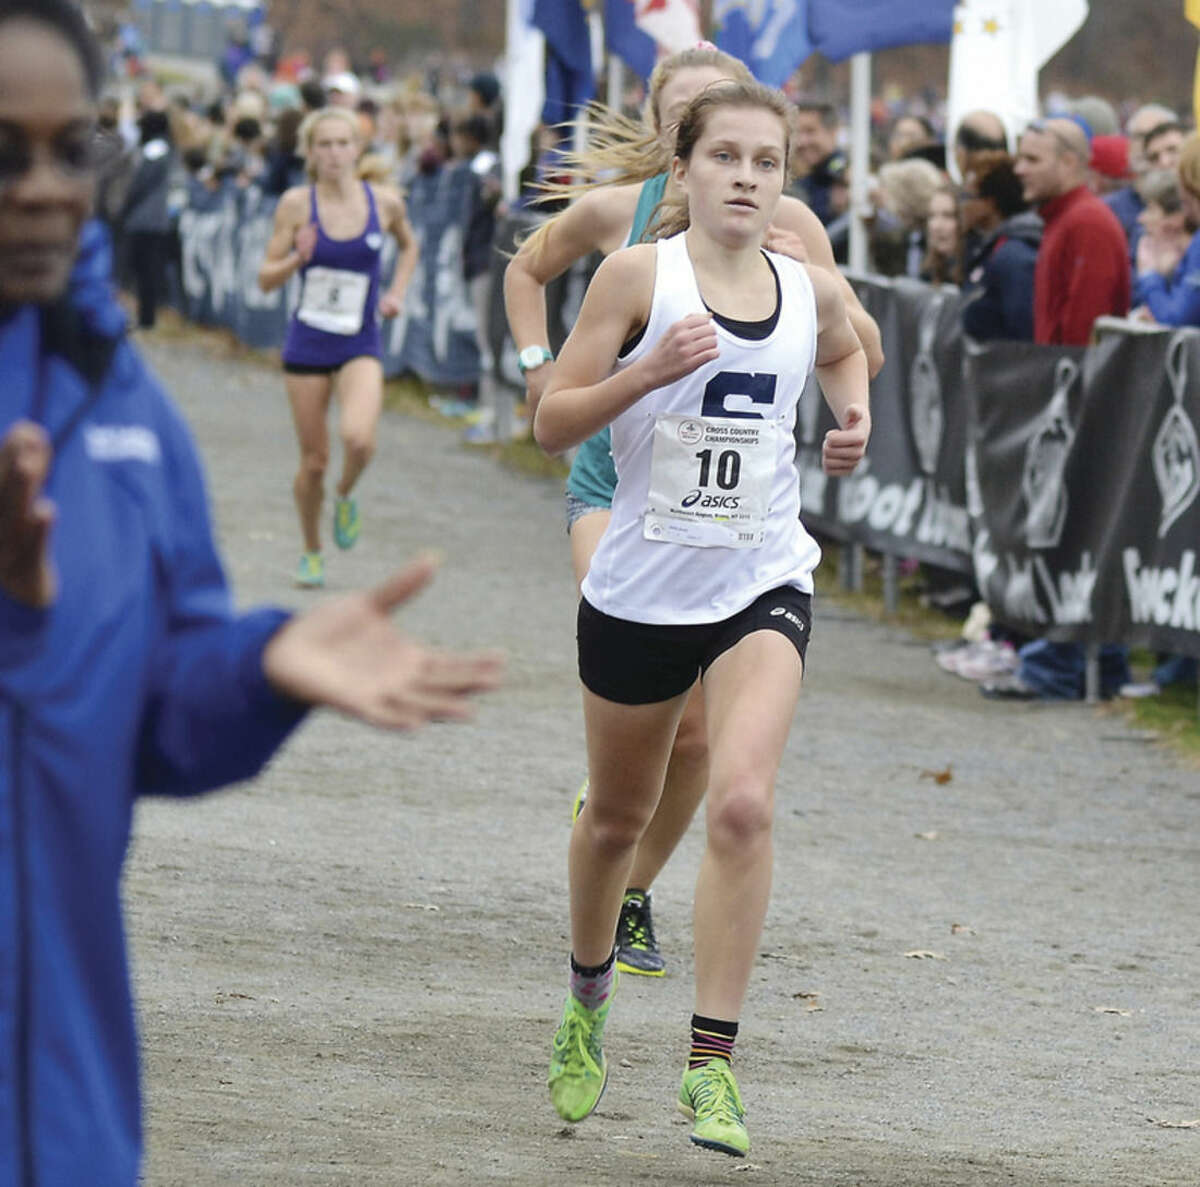 Hour photo/Mary Albl Staples High senior Hannah DeBalsi heads down the stretch to place fourth overall at the Foot Locker Northeast Cross Country Regional Championships on Saturday at Van Cortlandt Park, N.Y.